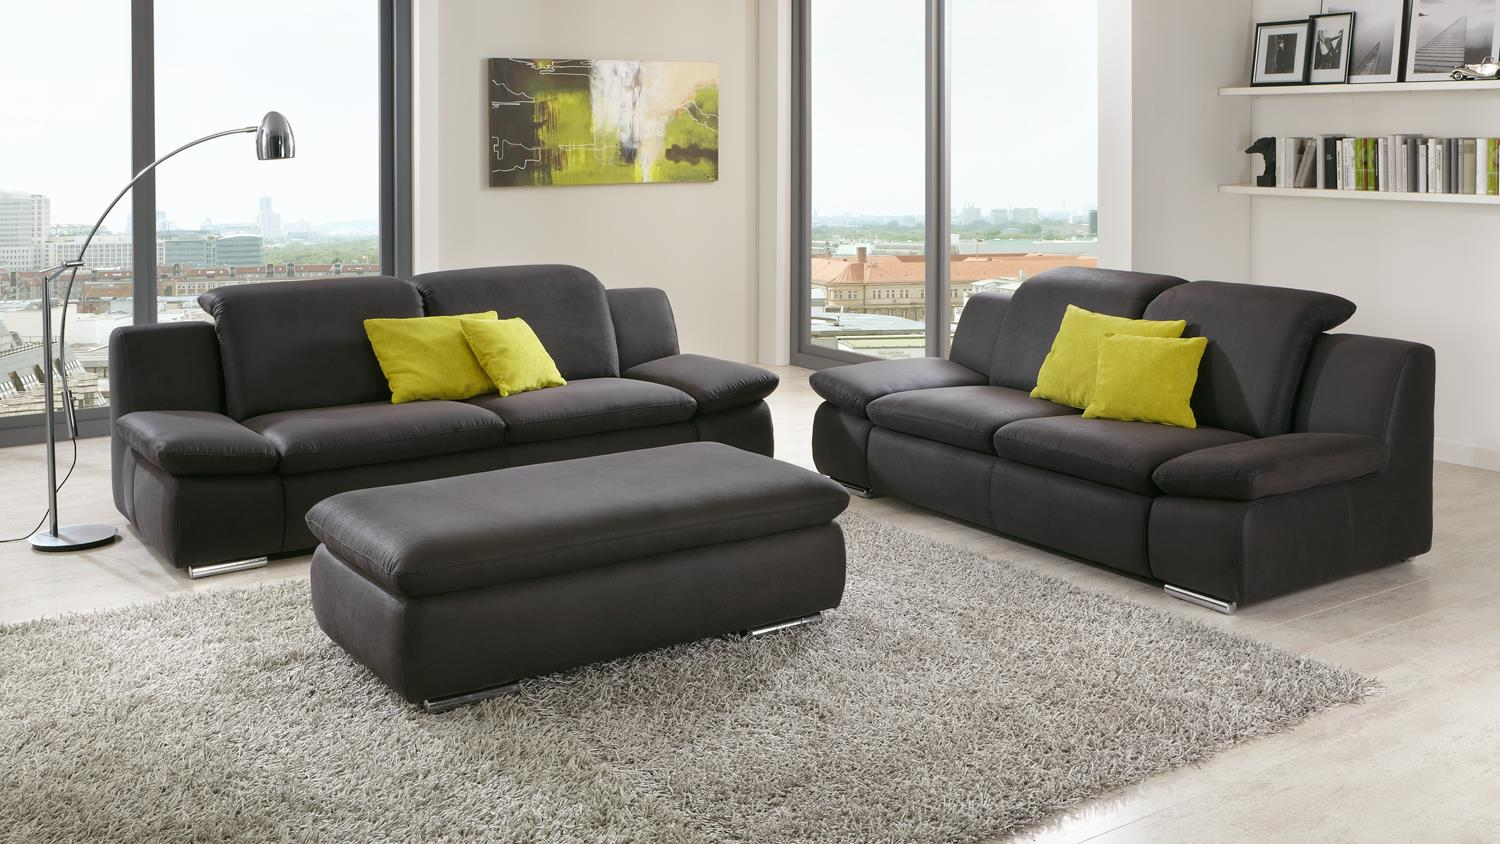 sofa isona 3 sitzer anthrazit mit kopfteilverstellung. Black Bedroom Furniture Sets. Home Design Ideas